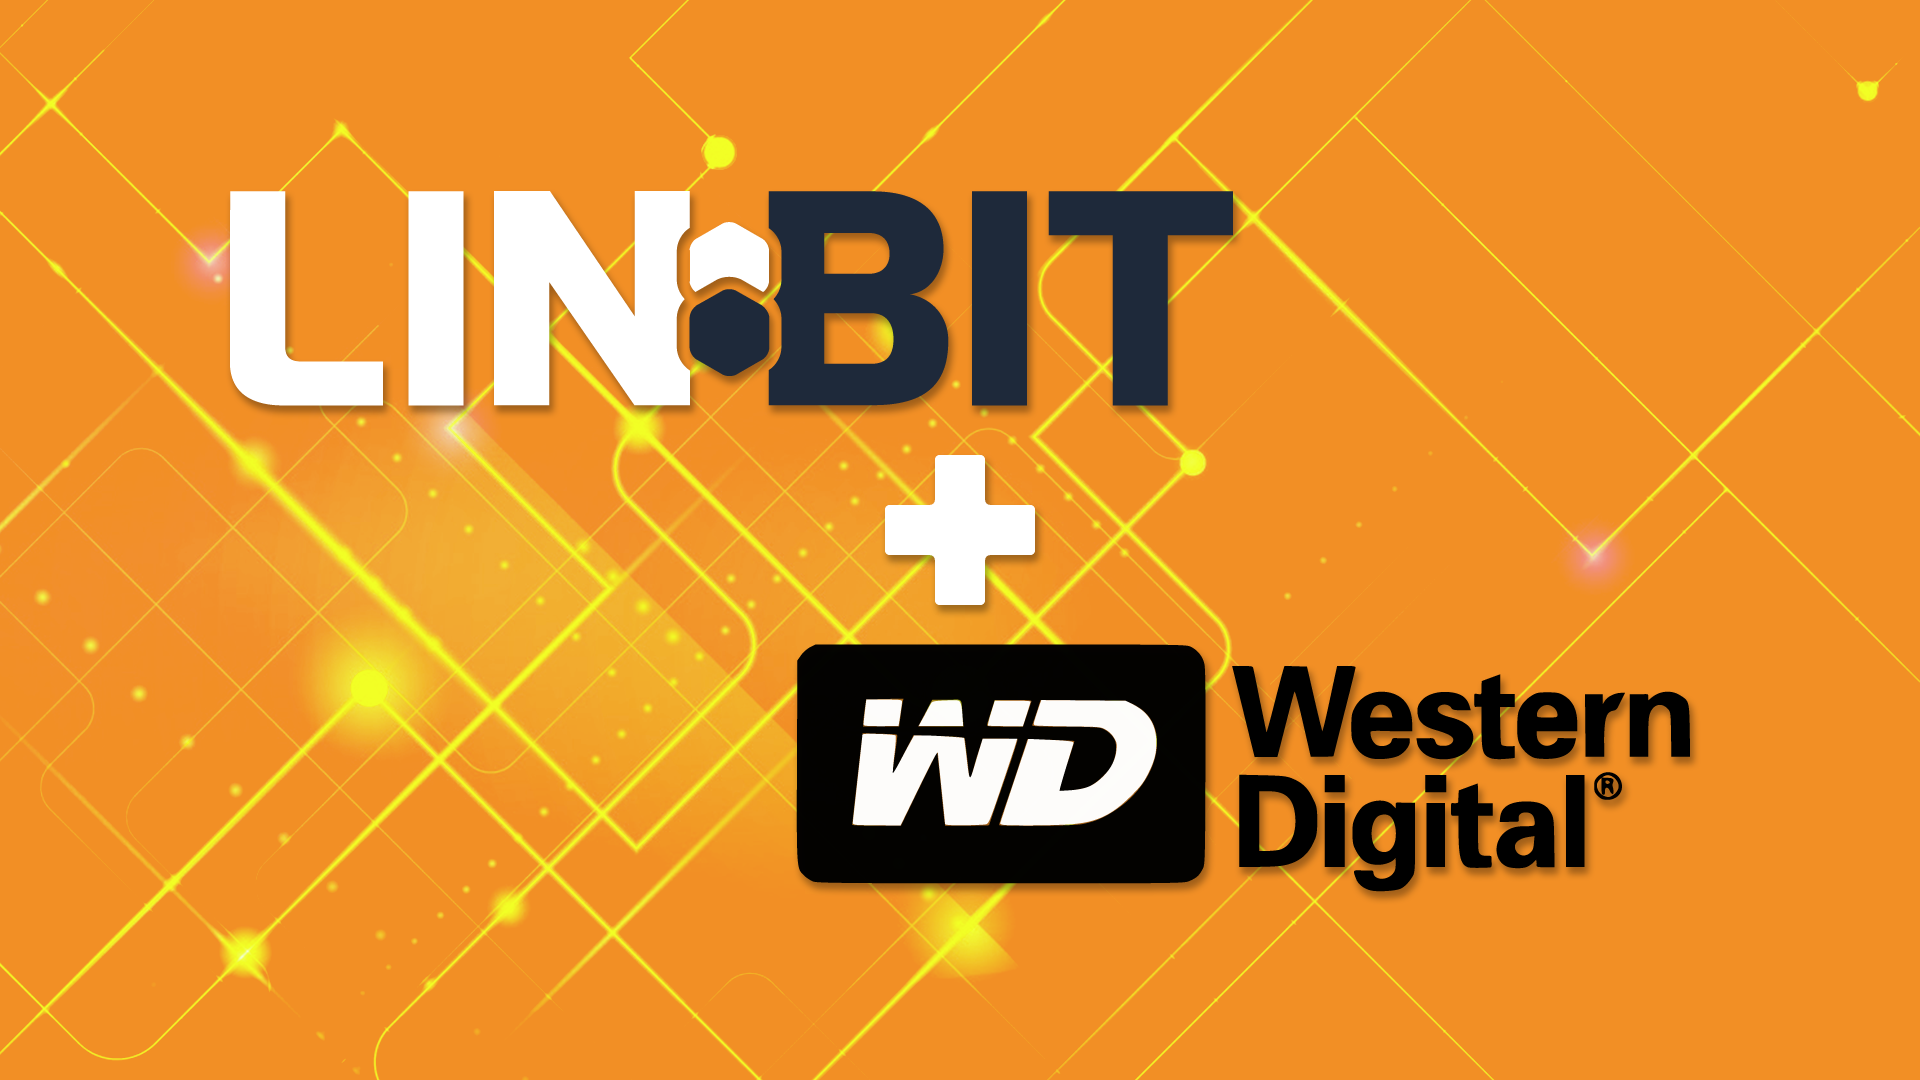 LINBIT has partnered with Western Digital